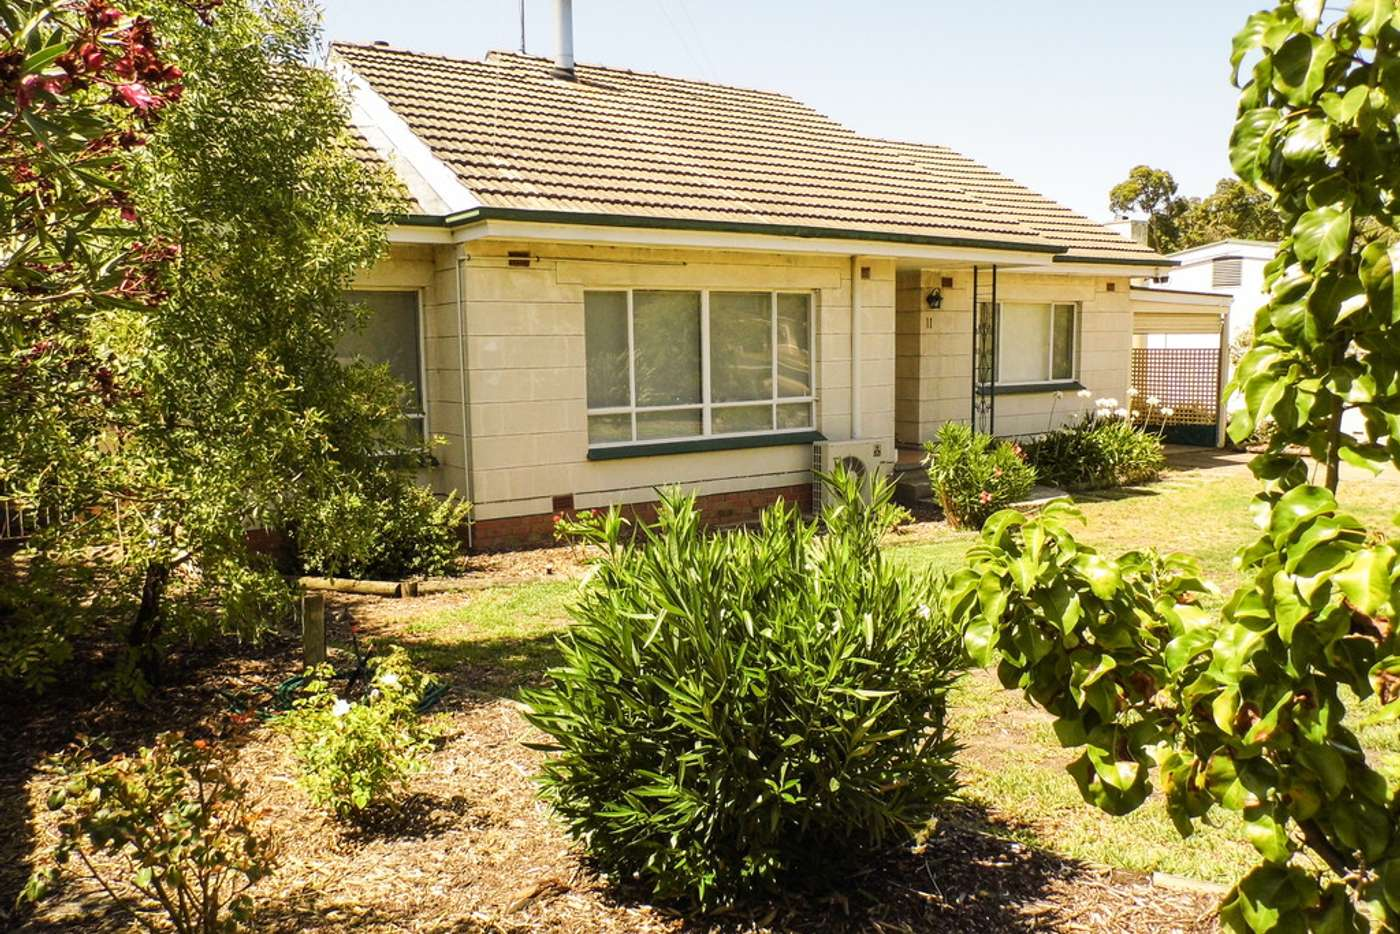 Main view of Homely house listing, 11 LOVEDAY STREET, Naracoorte SA 5271